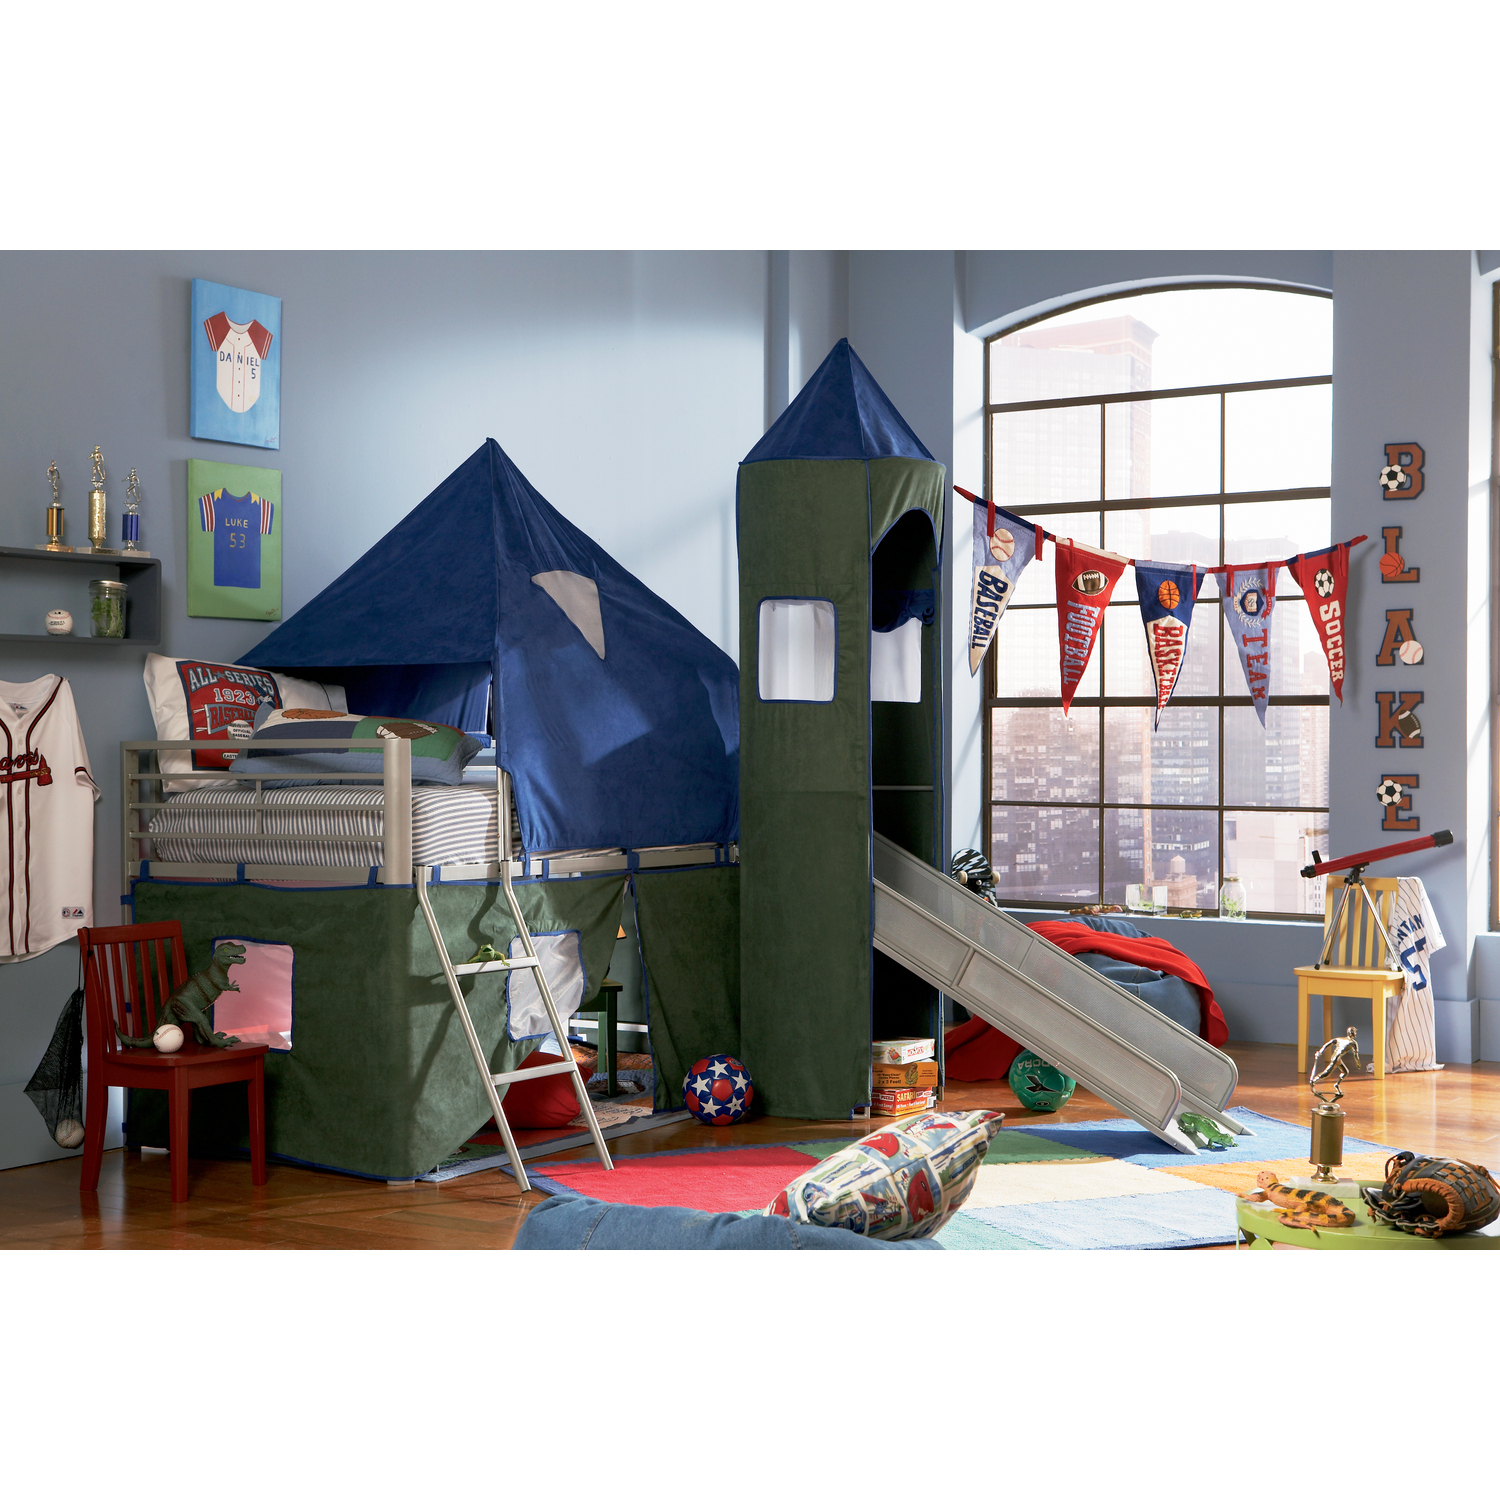 Twin Bed With Slide Part - 44: ... Bunk Beds With Slide And Tent